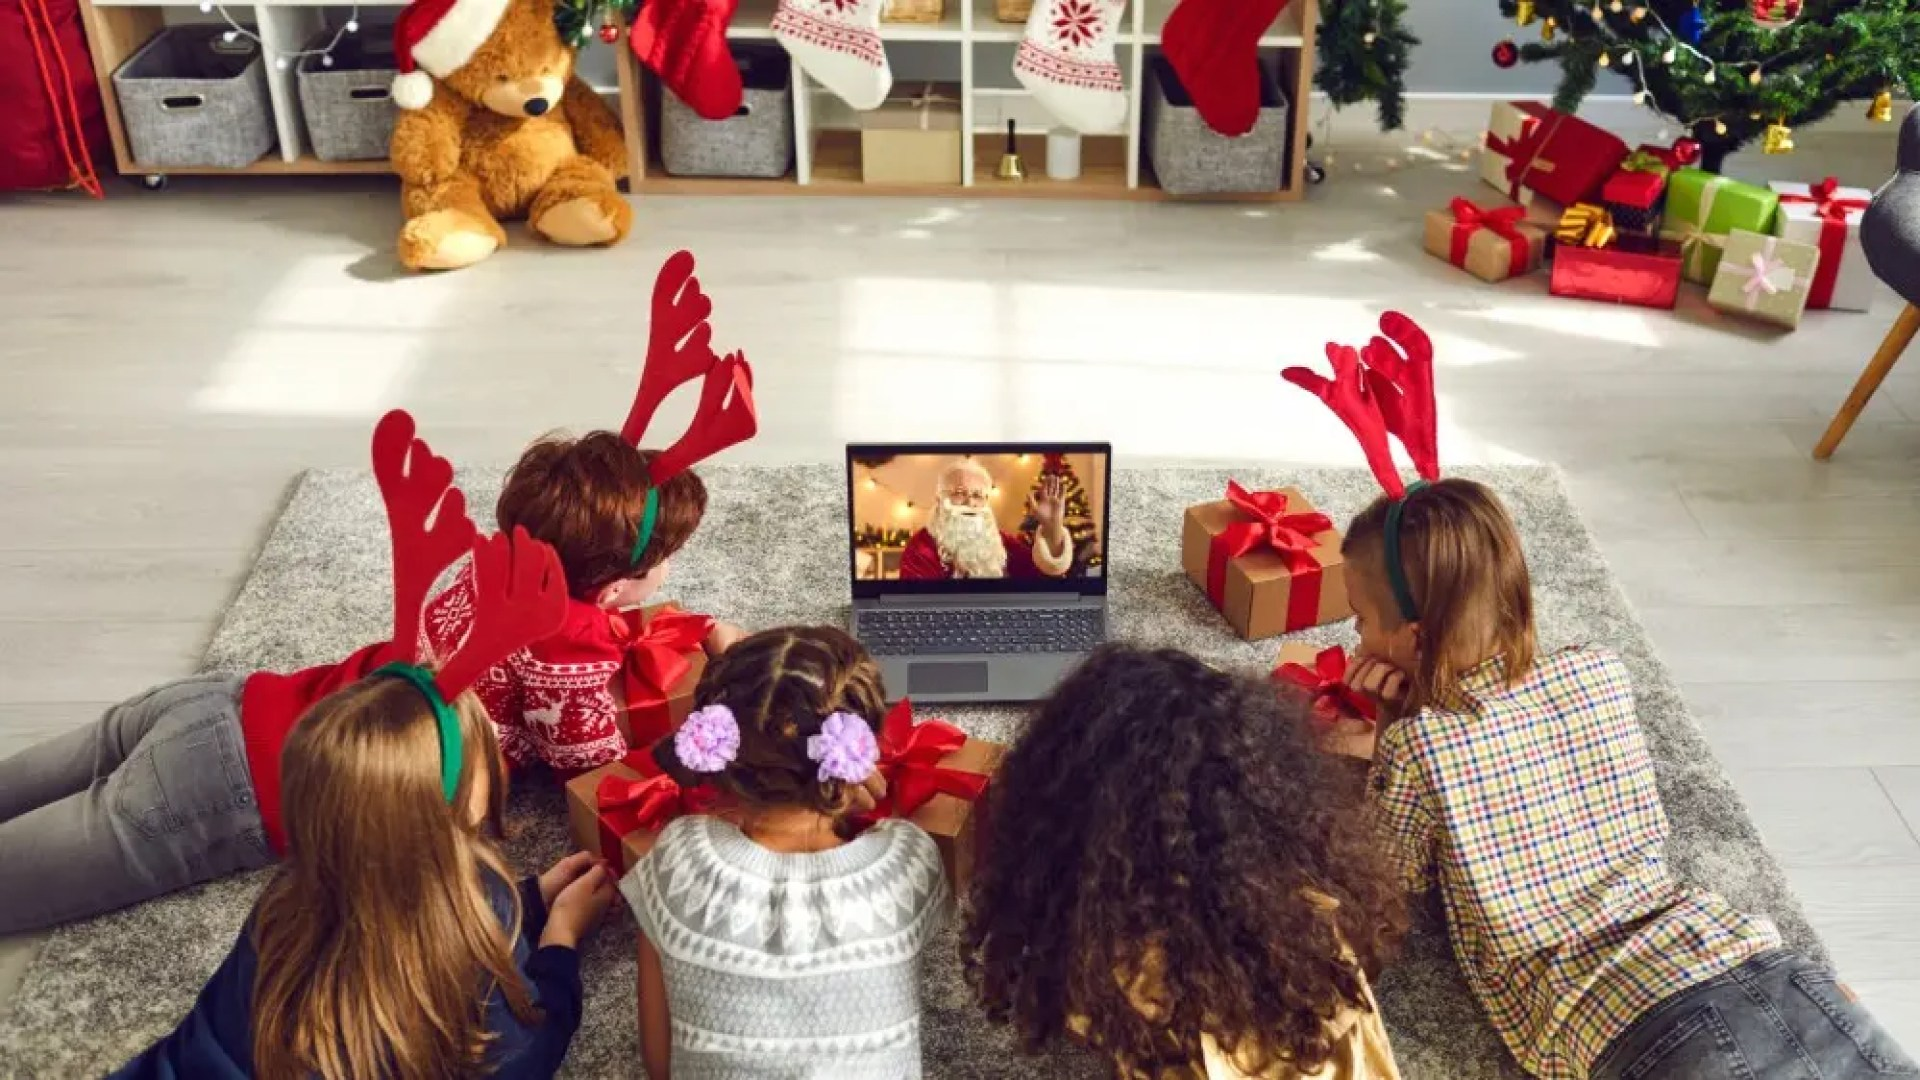 A group of children watching a video chat with Santa Claus using a laptop in a festive decorated home